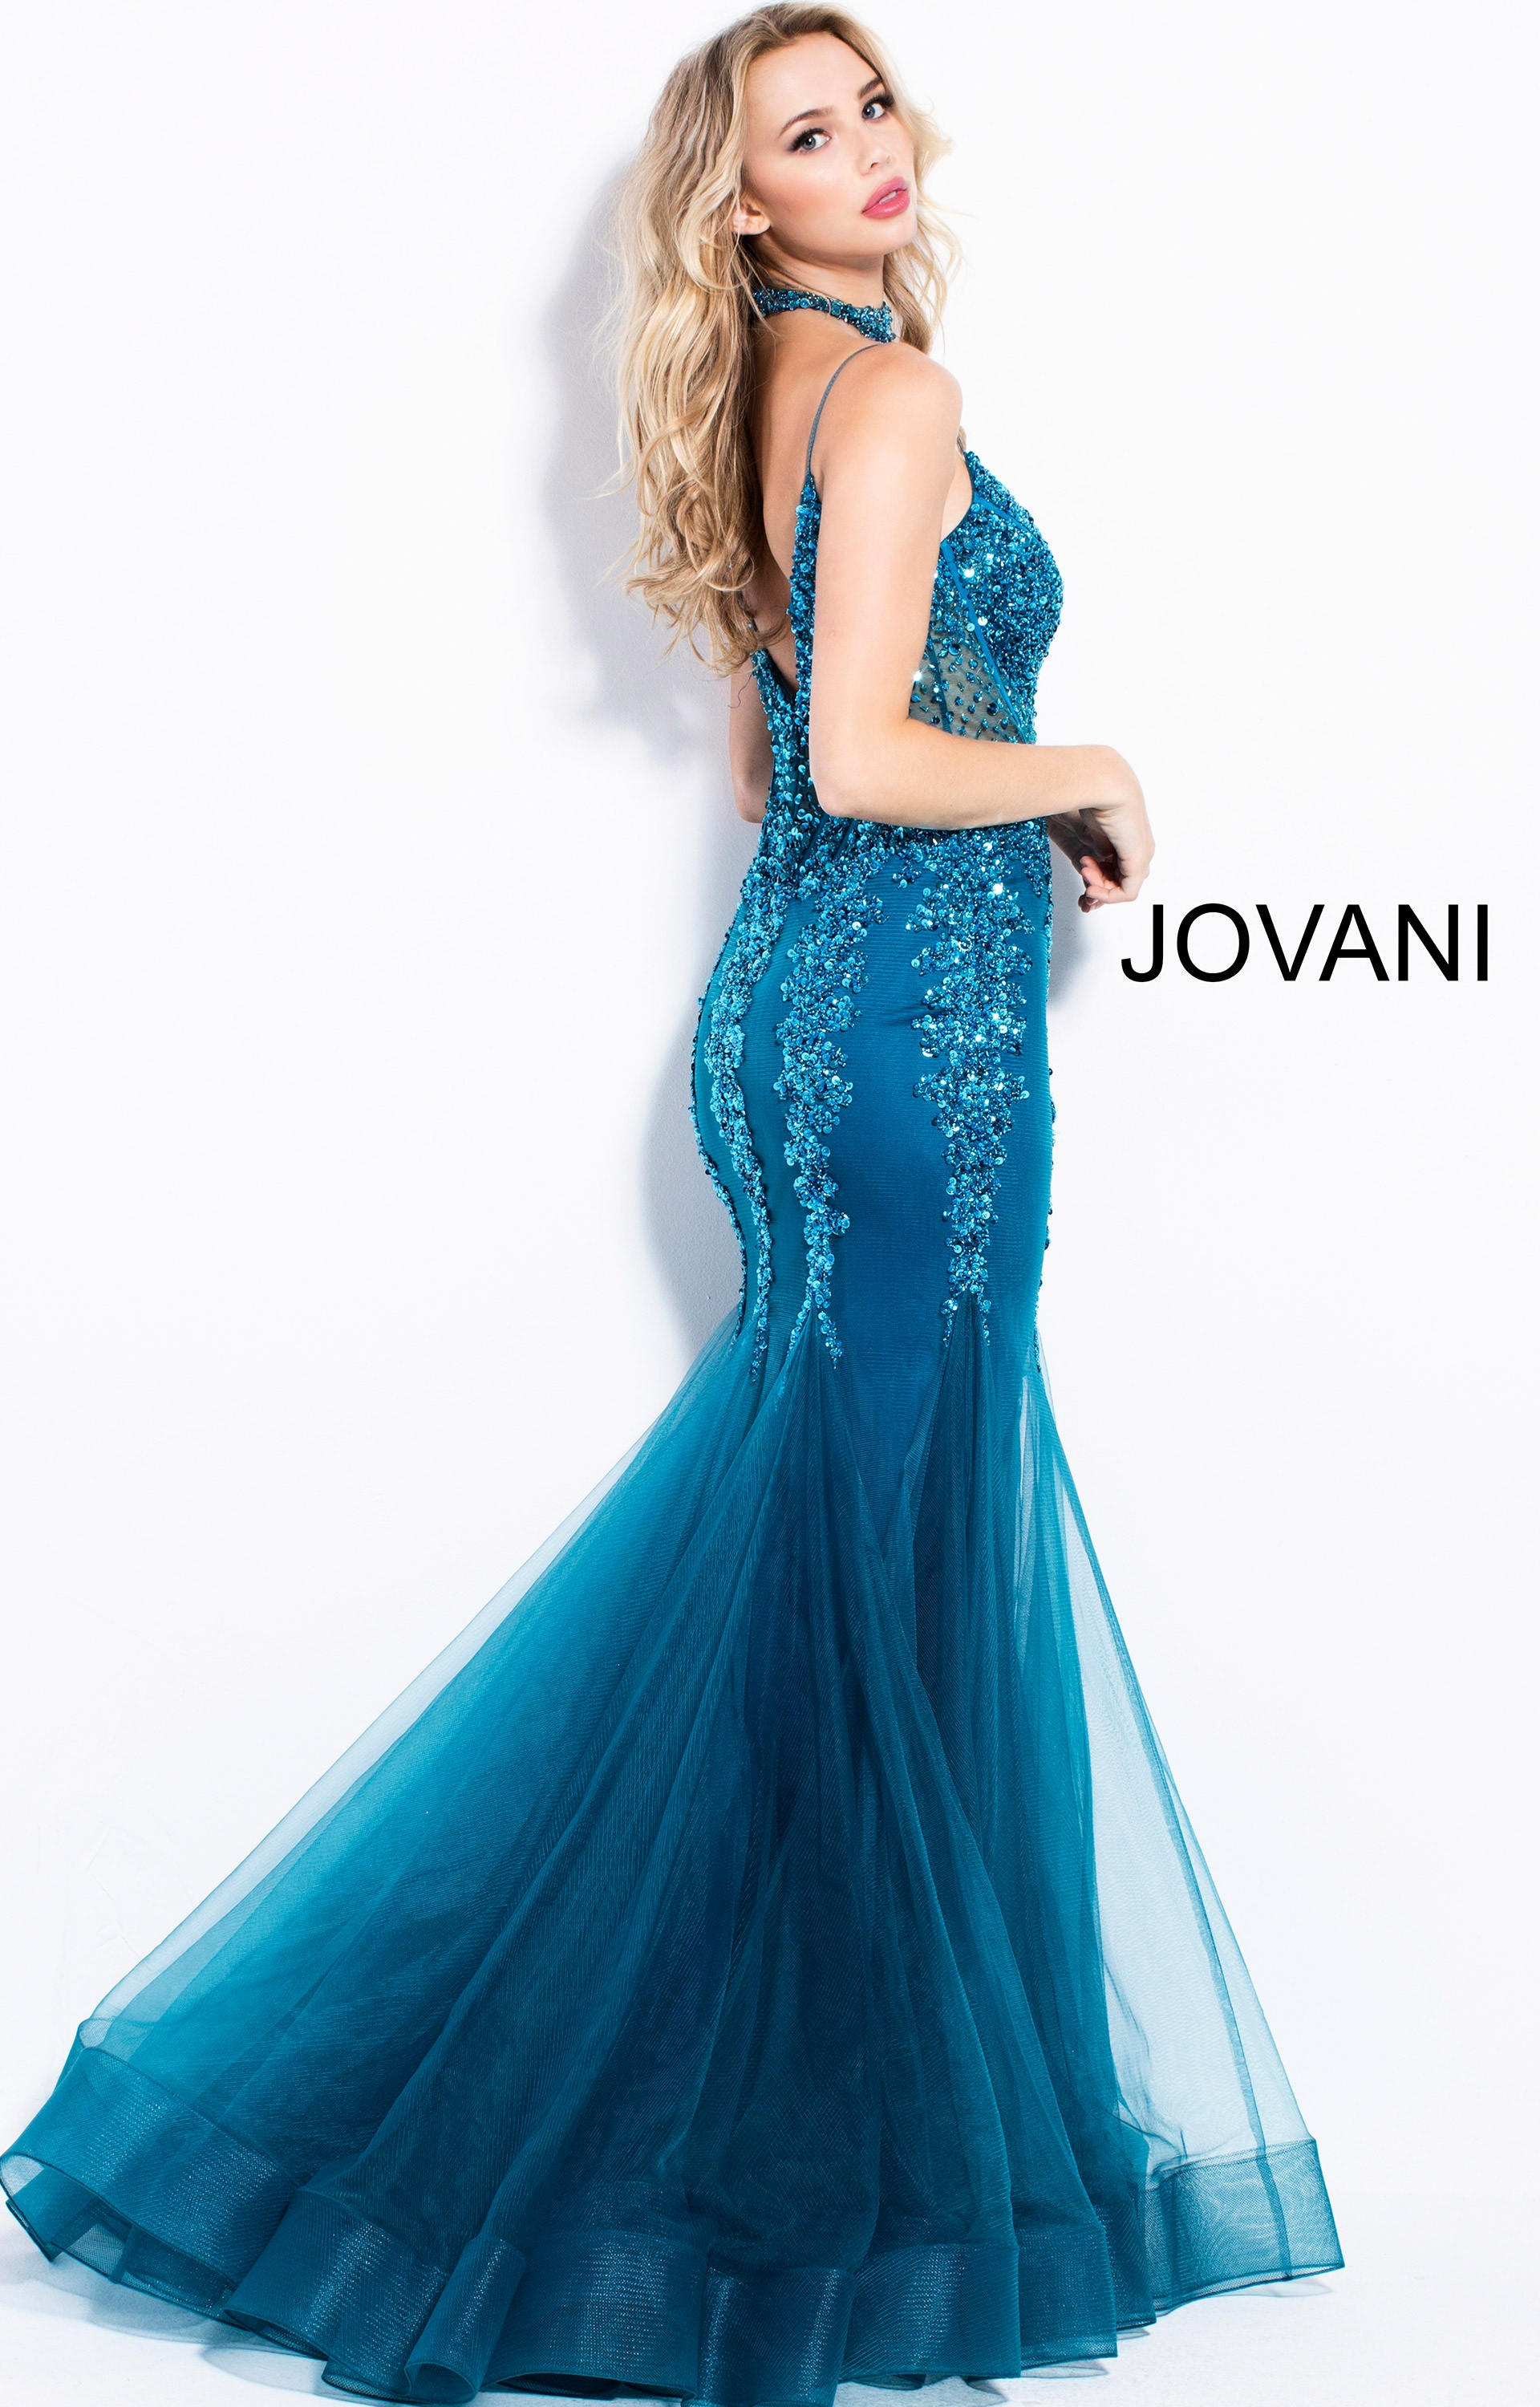 Jovani 56032 Shimmering Mermaid Dress With A Choker Prom